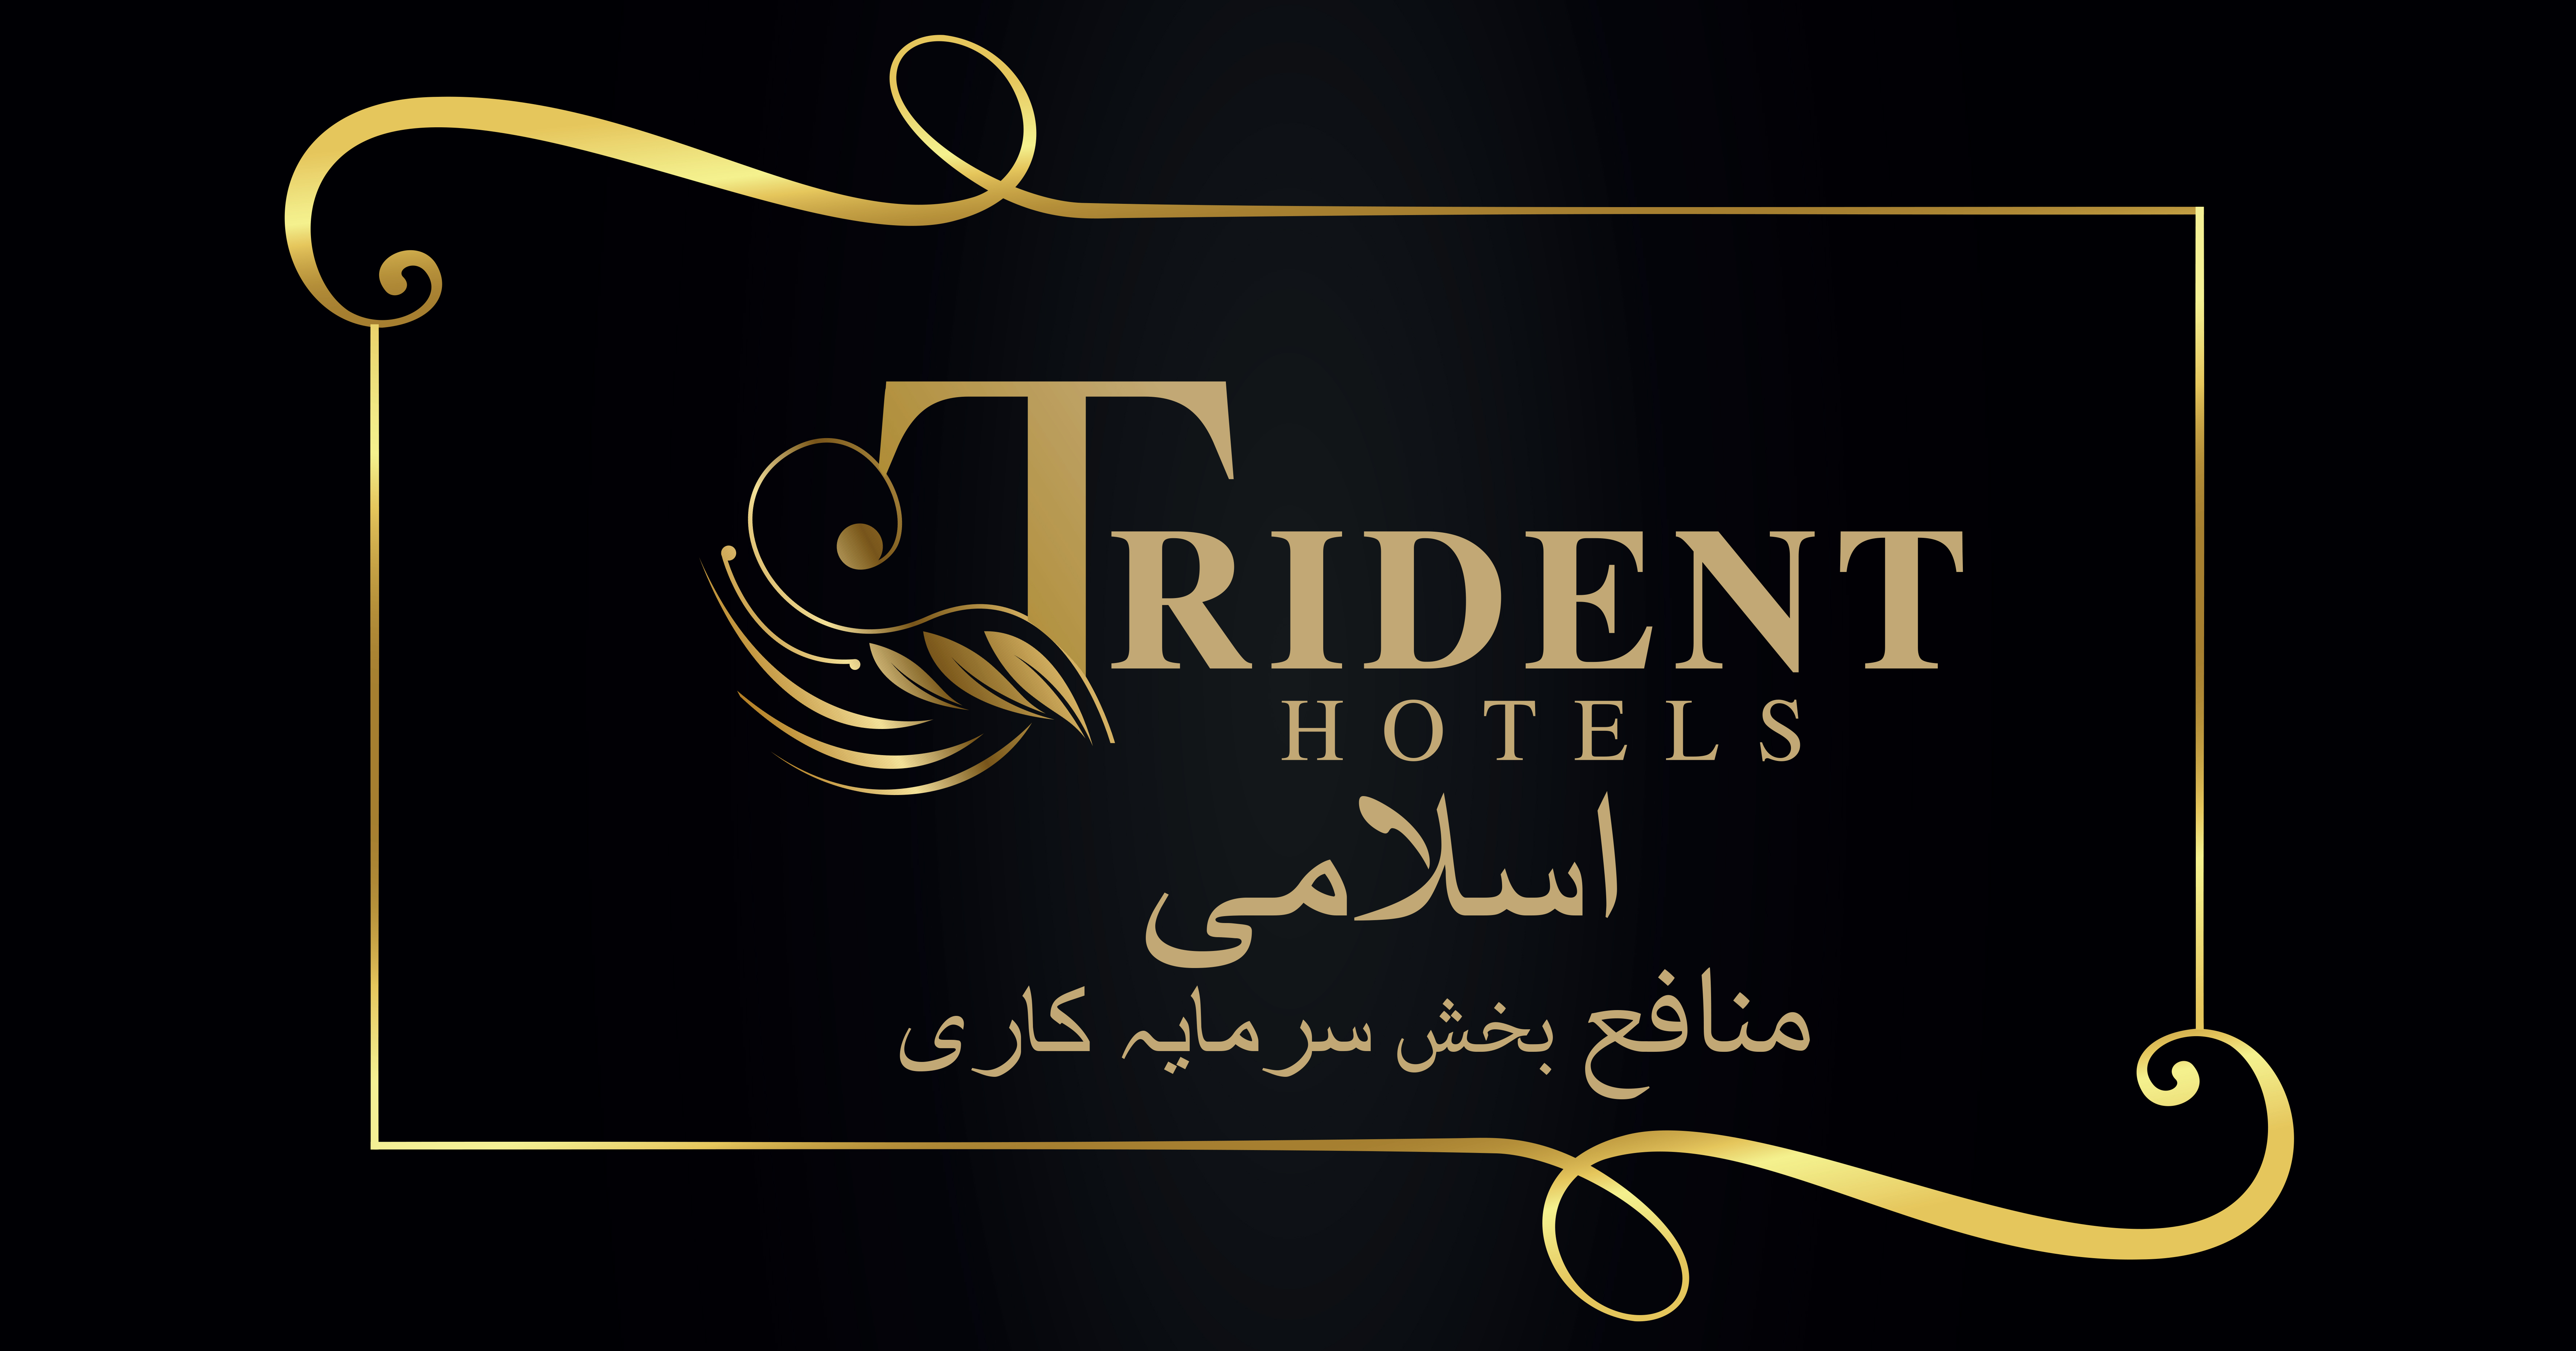 Trident Hotel Islamabad - Property Buy Rent